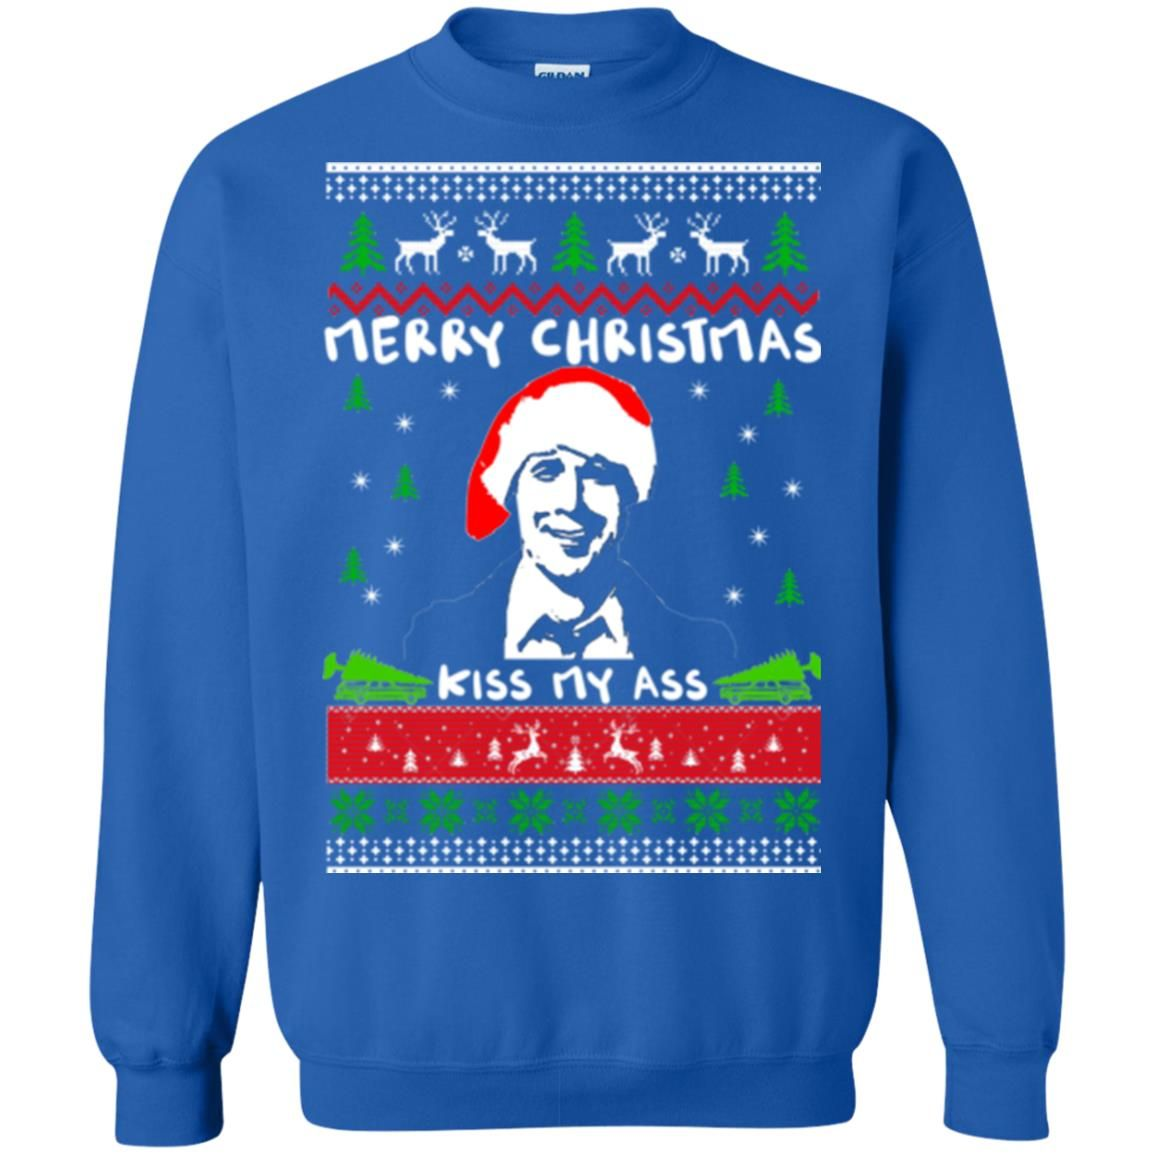 image 1703 - Clark Griswold: Merry Christmas kiss my ass sweater, hoodie, long sleeve